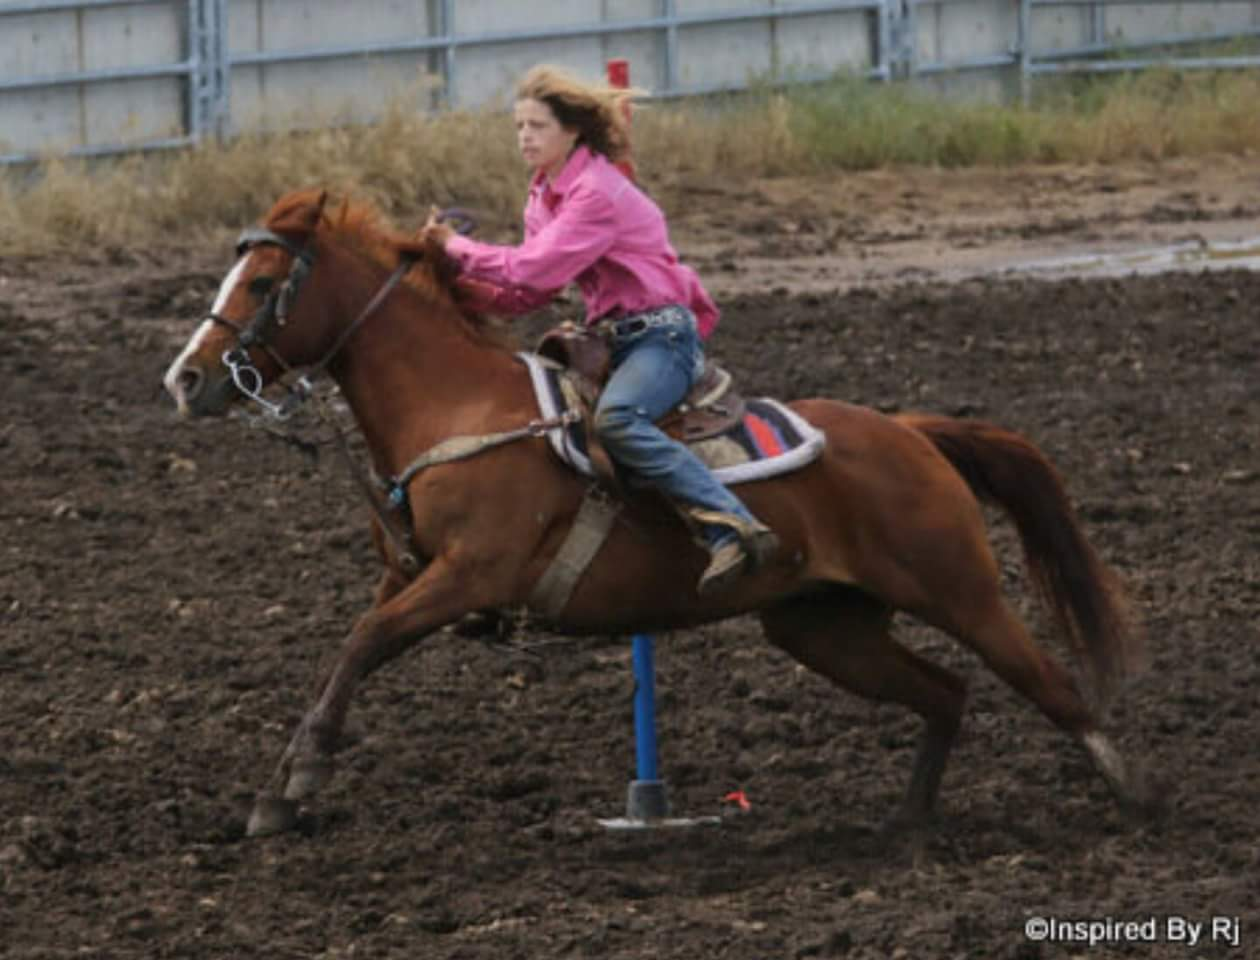 An all-around rodeo cowgirl, Shayla Dees, 13, Paola, specializes in pole bending riding her speedy Welsh mare called Little Bit. (Photo courtesy of Inspired by RJ.)